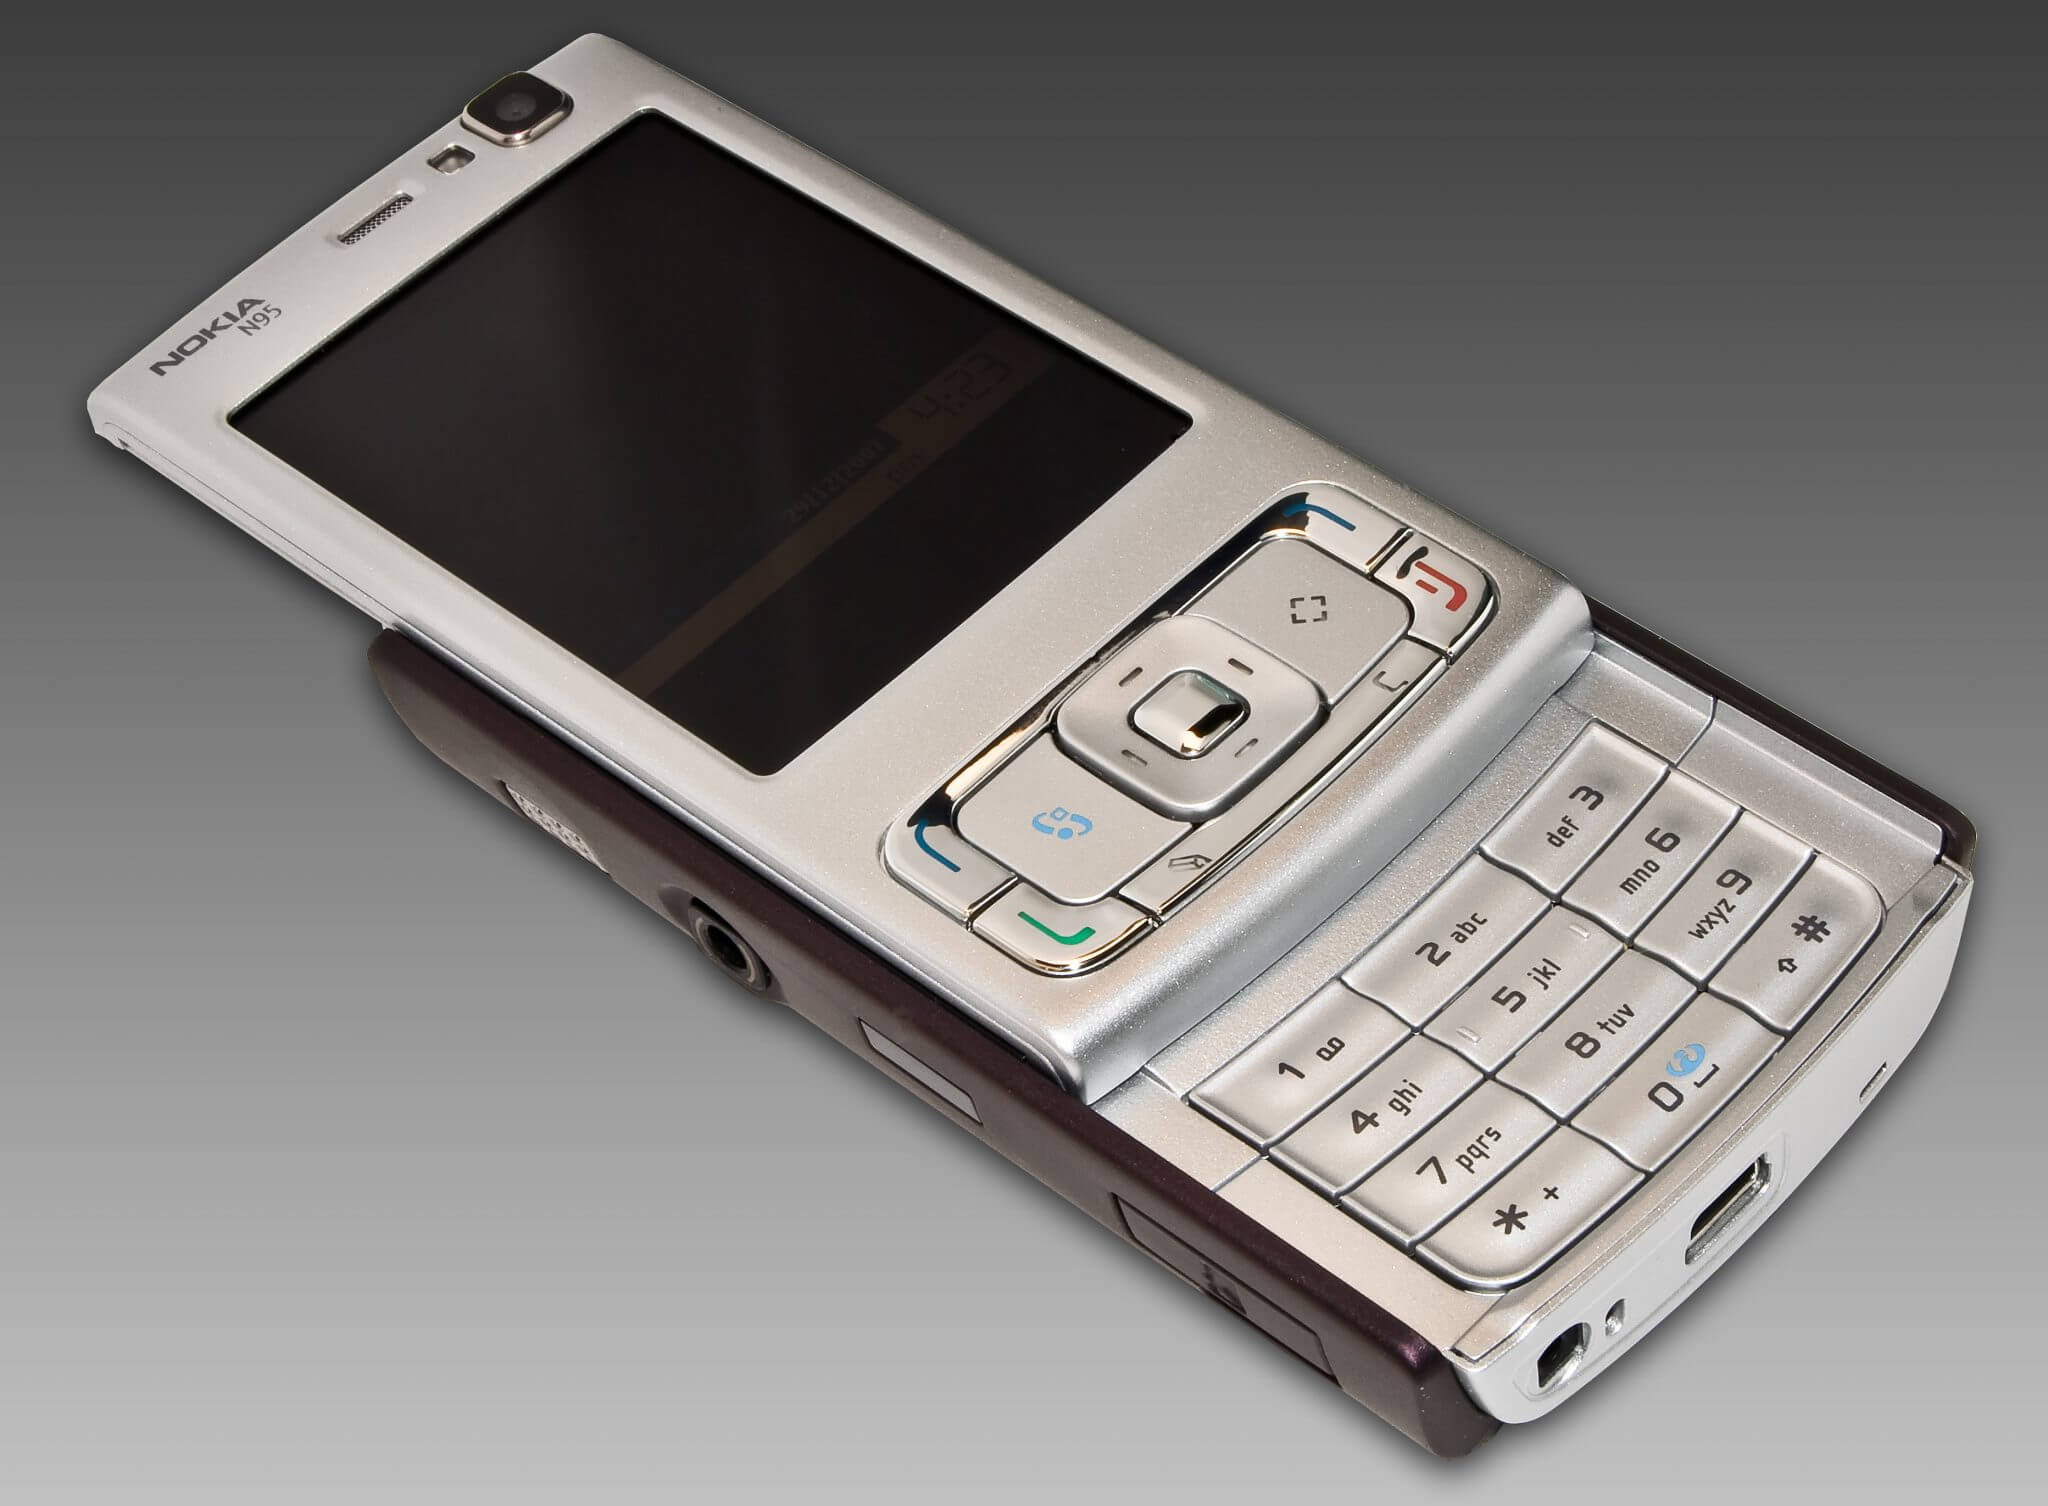 N95 Front slide open - Nokia N95 completa 10 anos